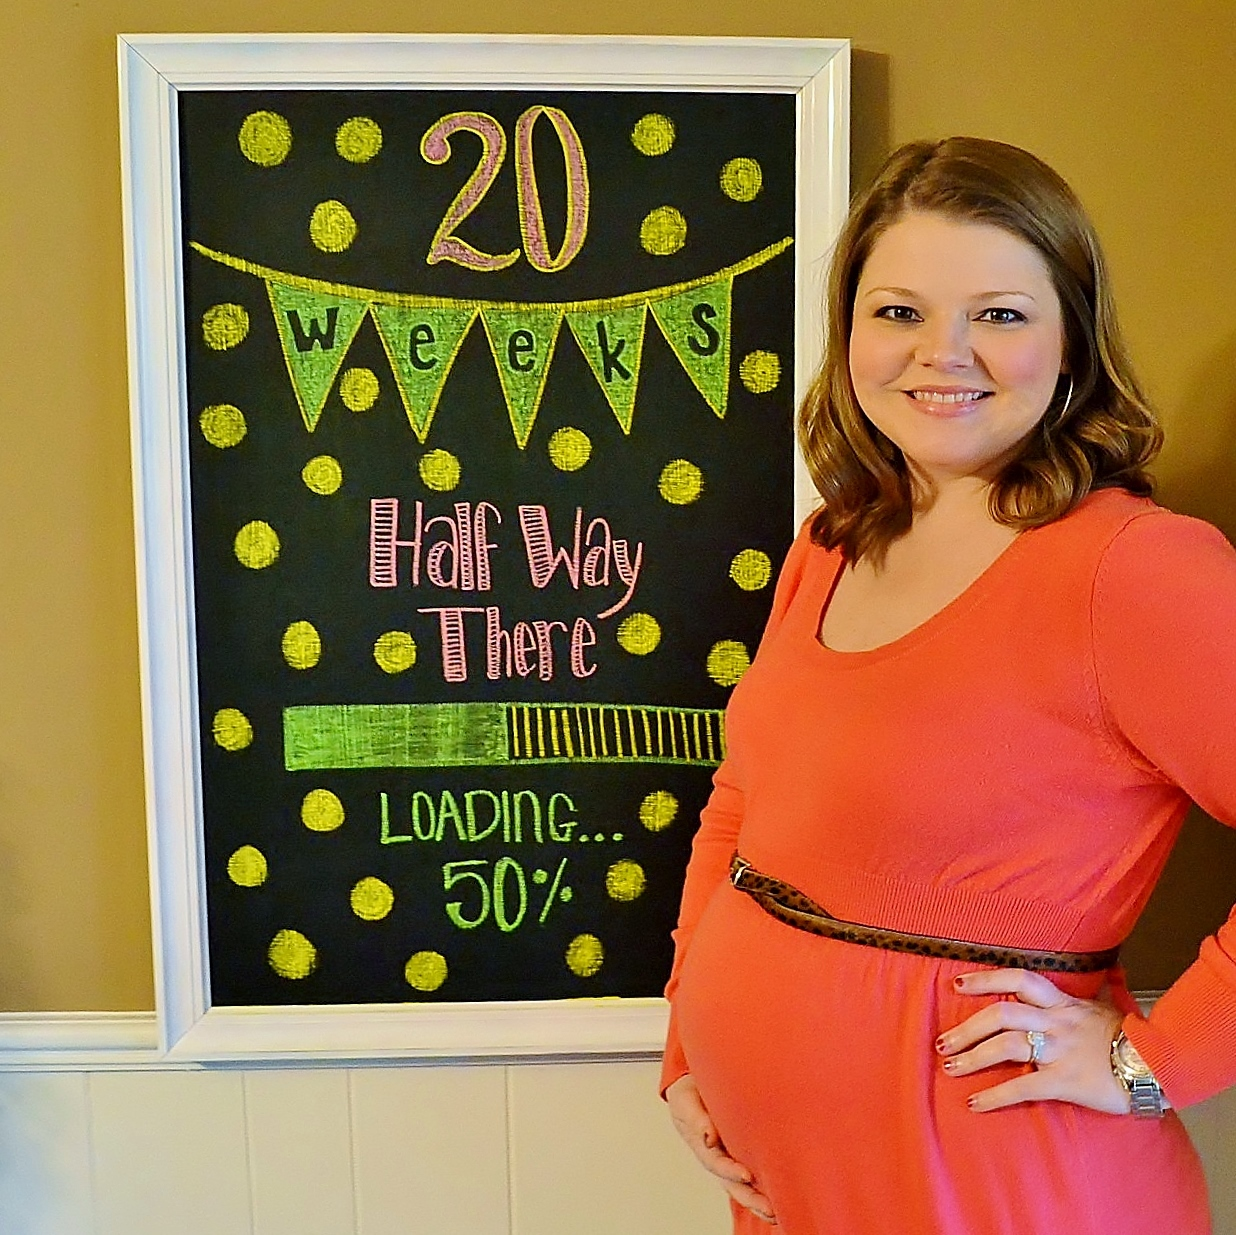 Pregnancy Chalkboard: 20 Weeks and We're Halfway There!